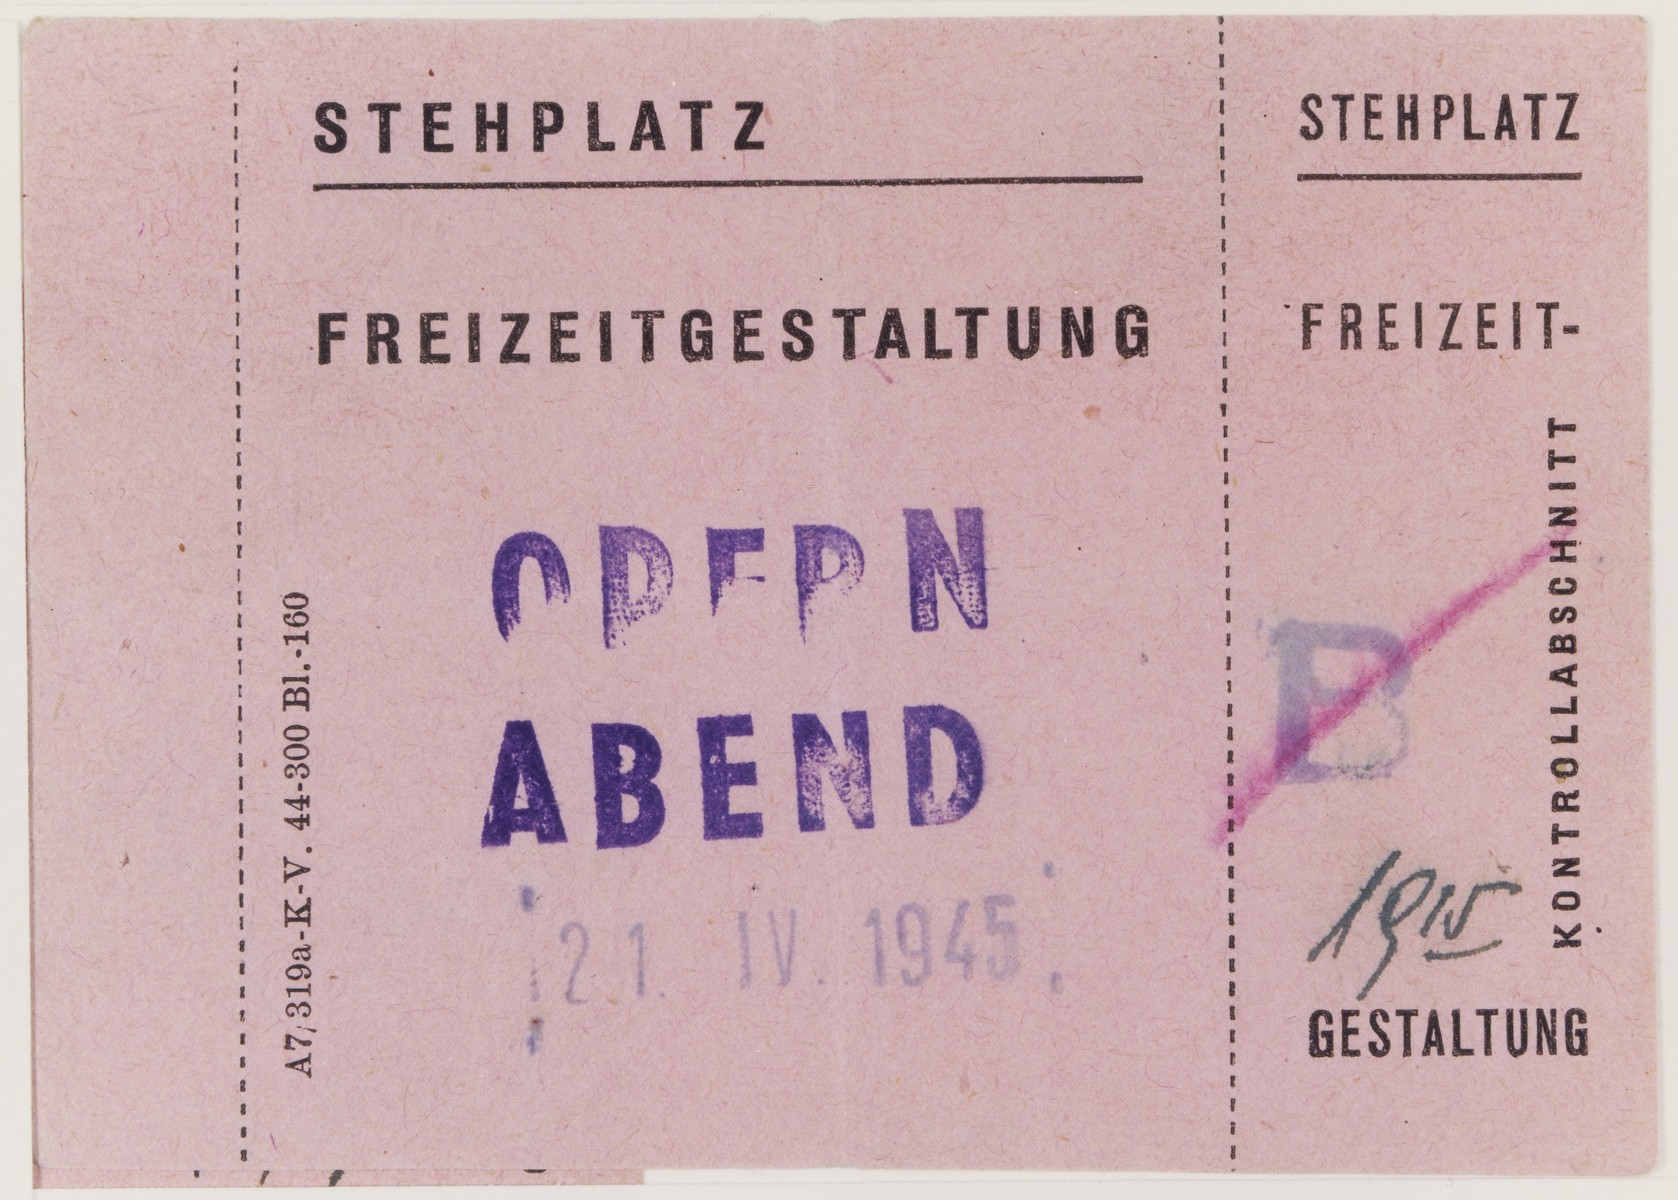 Standing room ticket for an opera performed on April 21, 1945 in the Theresienstadt ghetto.